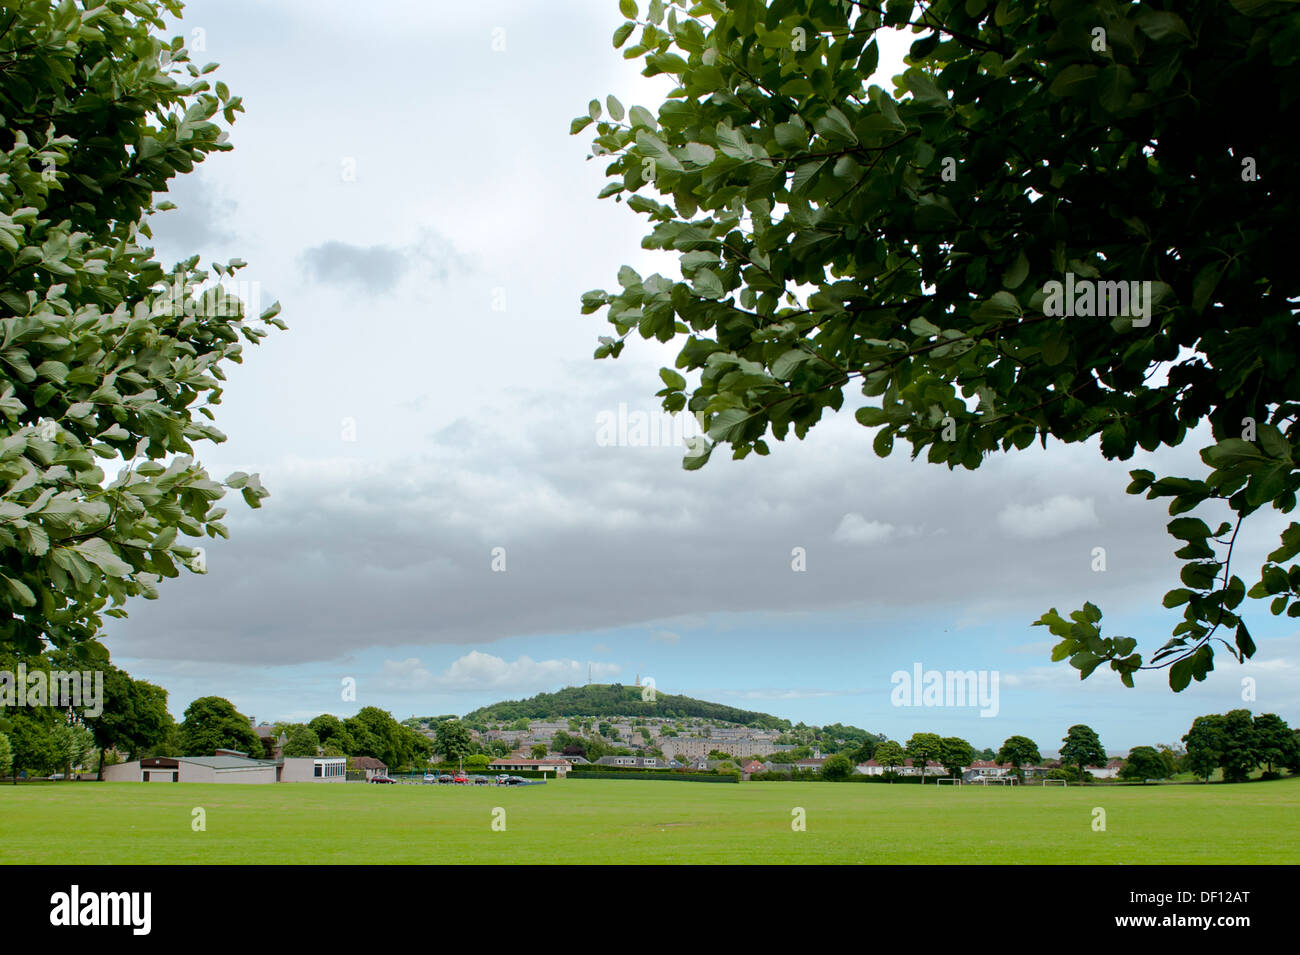 Law hill from Lochee park through trees - Stock Image